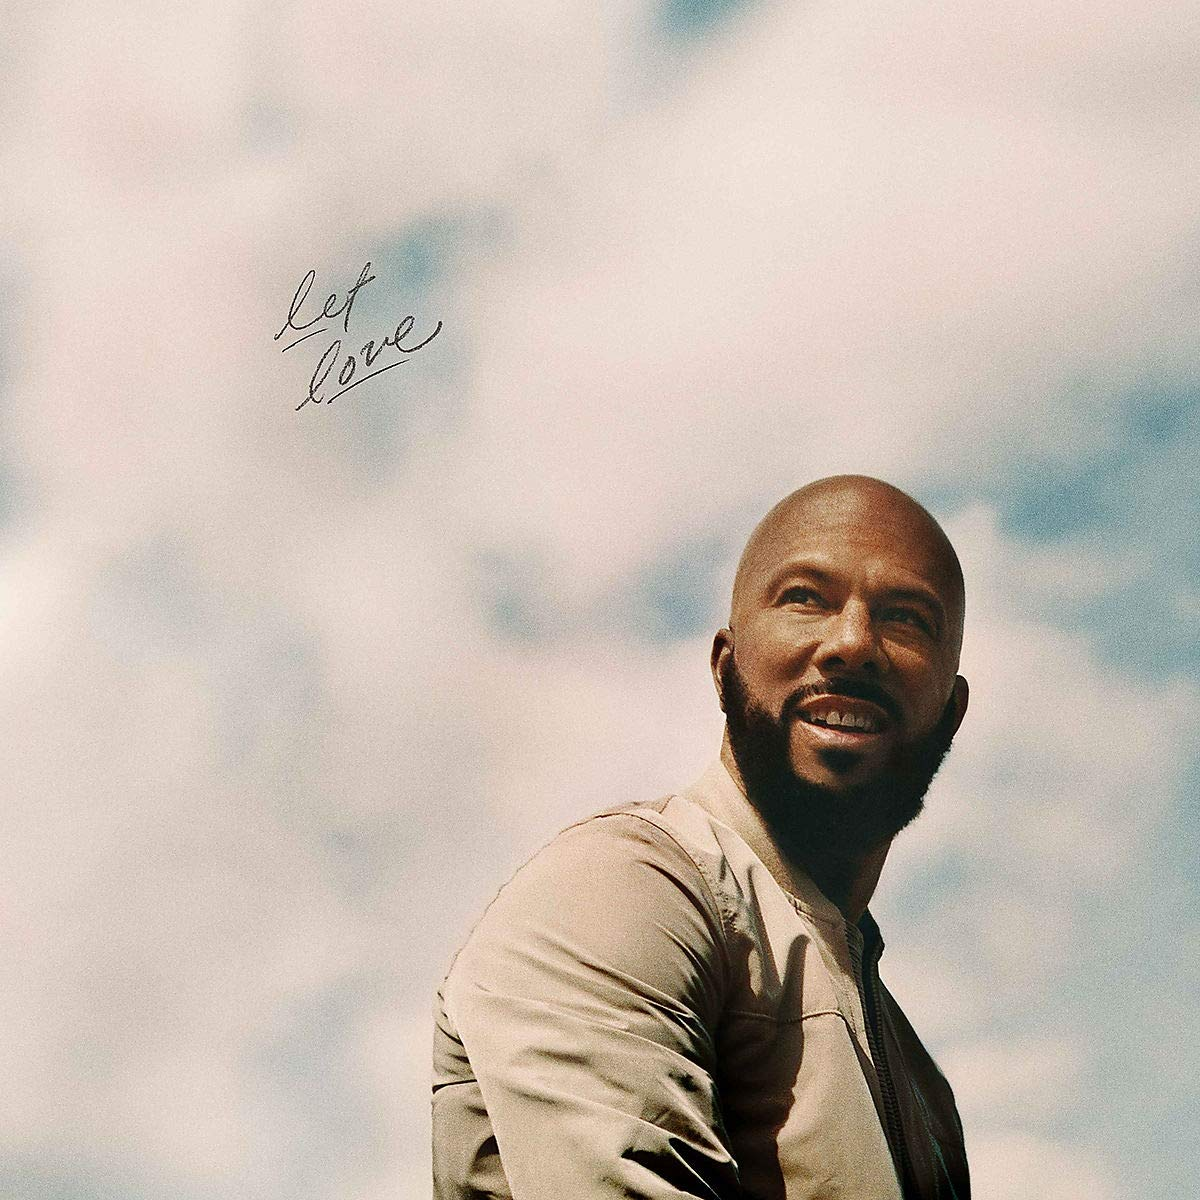 COMMON - Let Love cover